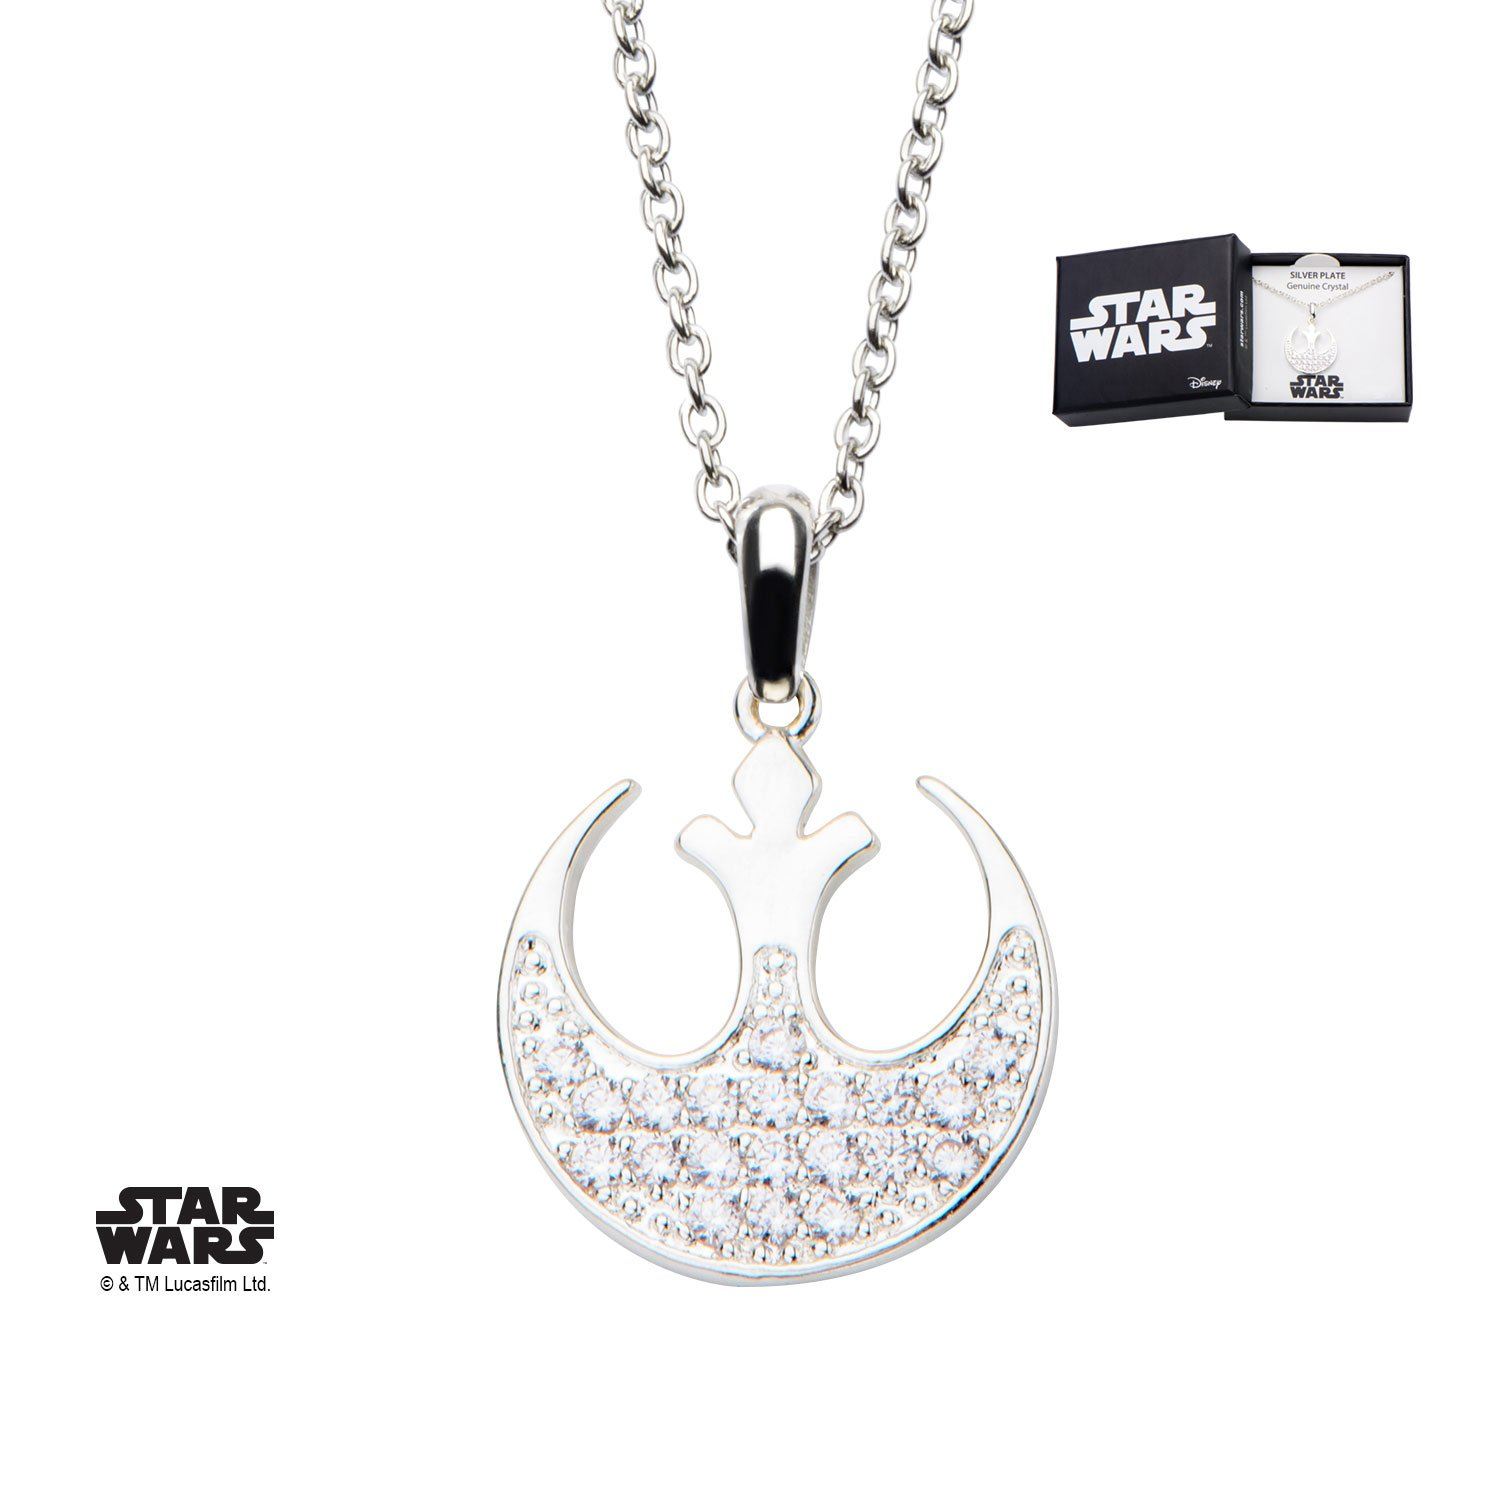 Star Wars Rebel Alliance Symbol Stainless Steel Pendant Necklace w/Gift Box by Superheroes Brand